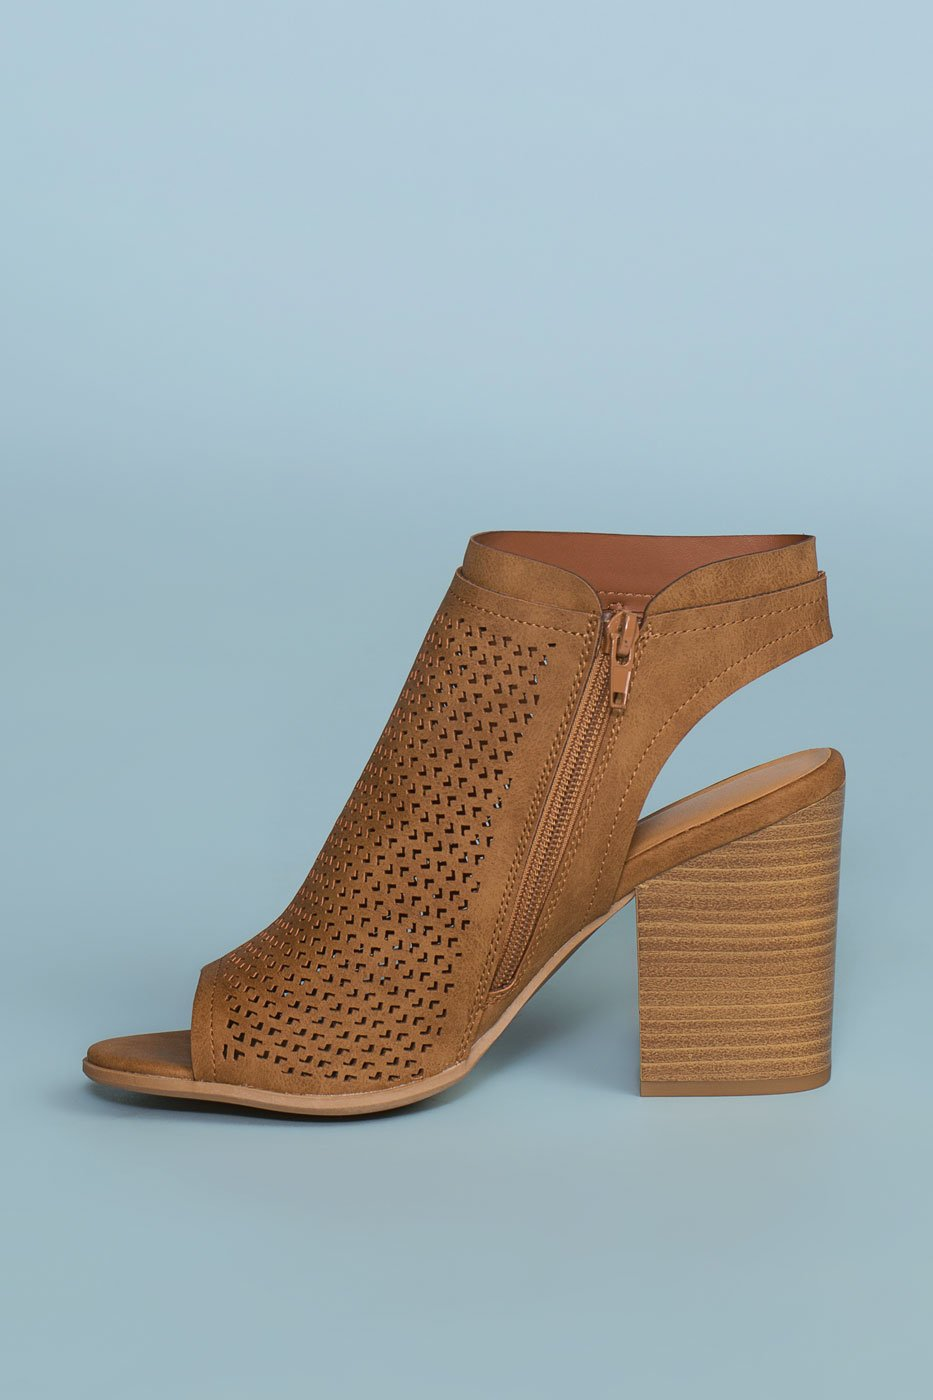 Shoes - Mali Block Heeled Mules - Tan